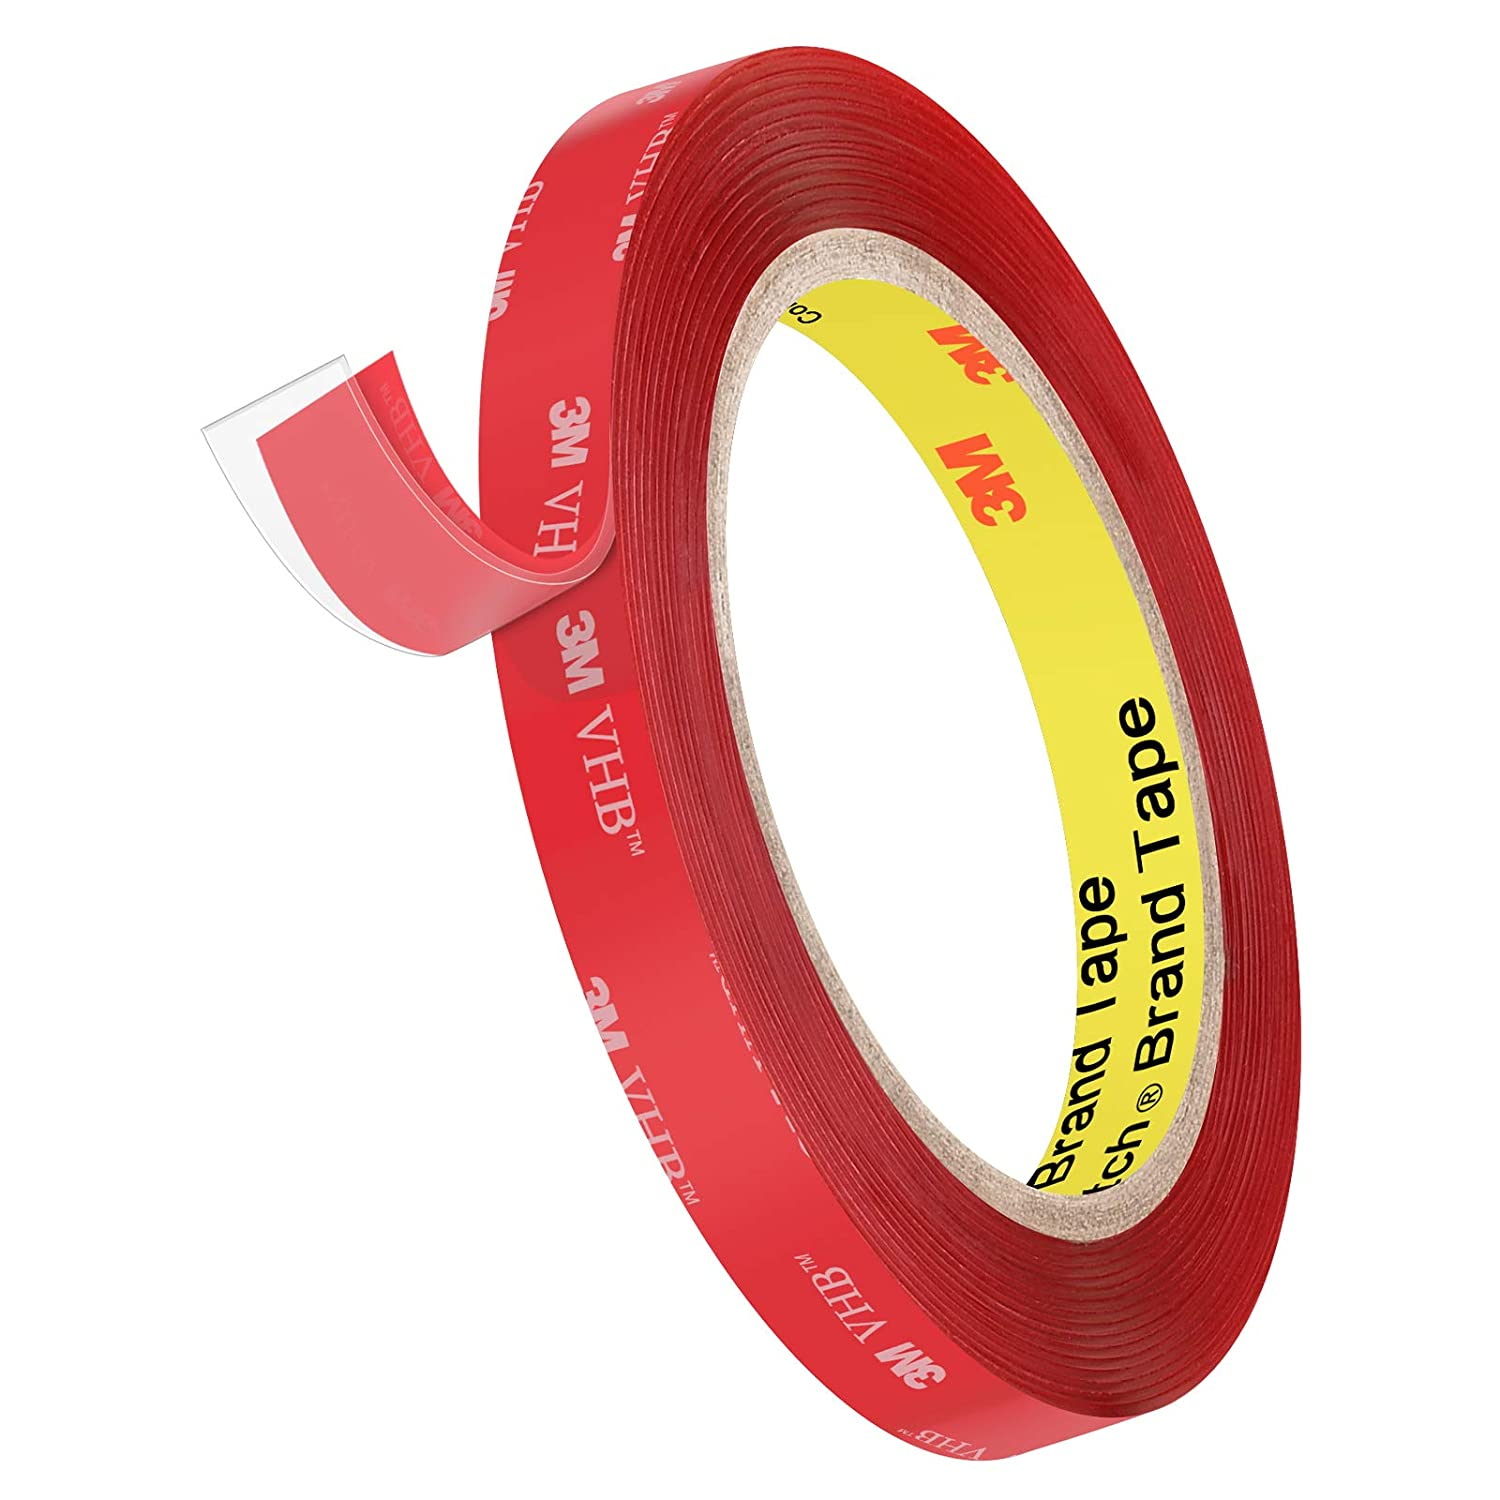 4910 Heavy Duty Double Sided Tape, Roseberry VHB Tape 16FT Length,1.1mm Thickness,0.5inch Width,Waterproof Mounting Tape for Car, Home Decor, Office Decor